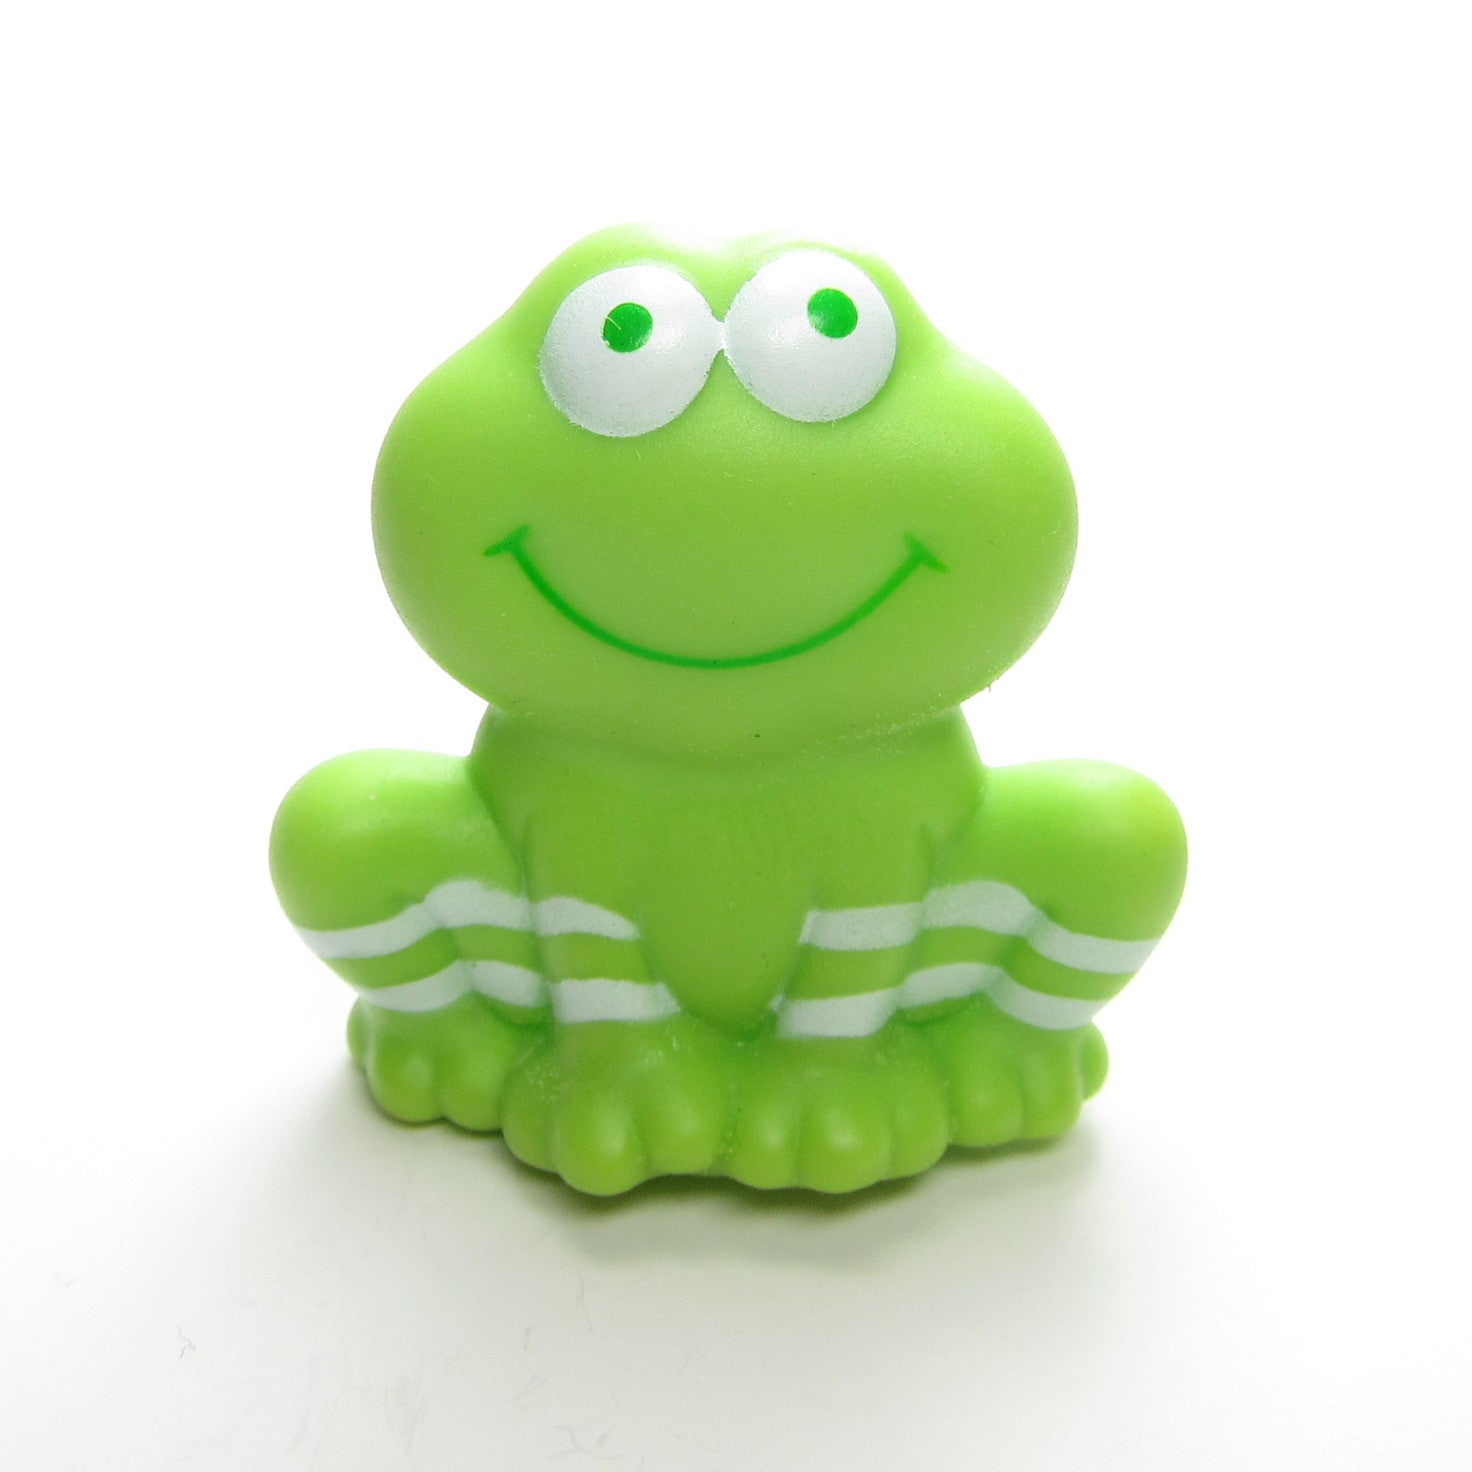 Frappe frog pet for Lemon Meringue doll